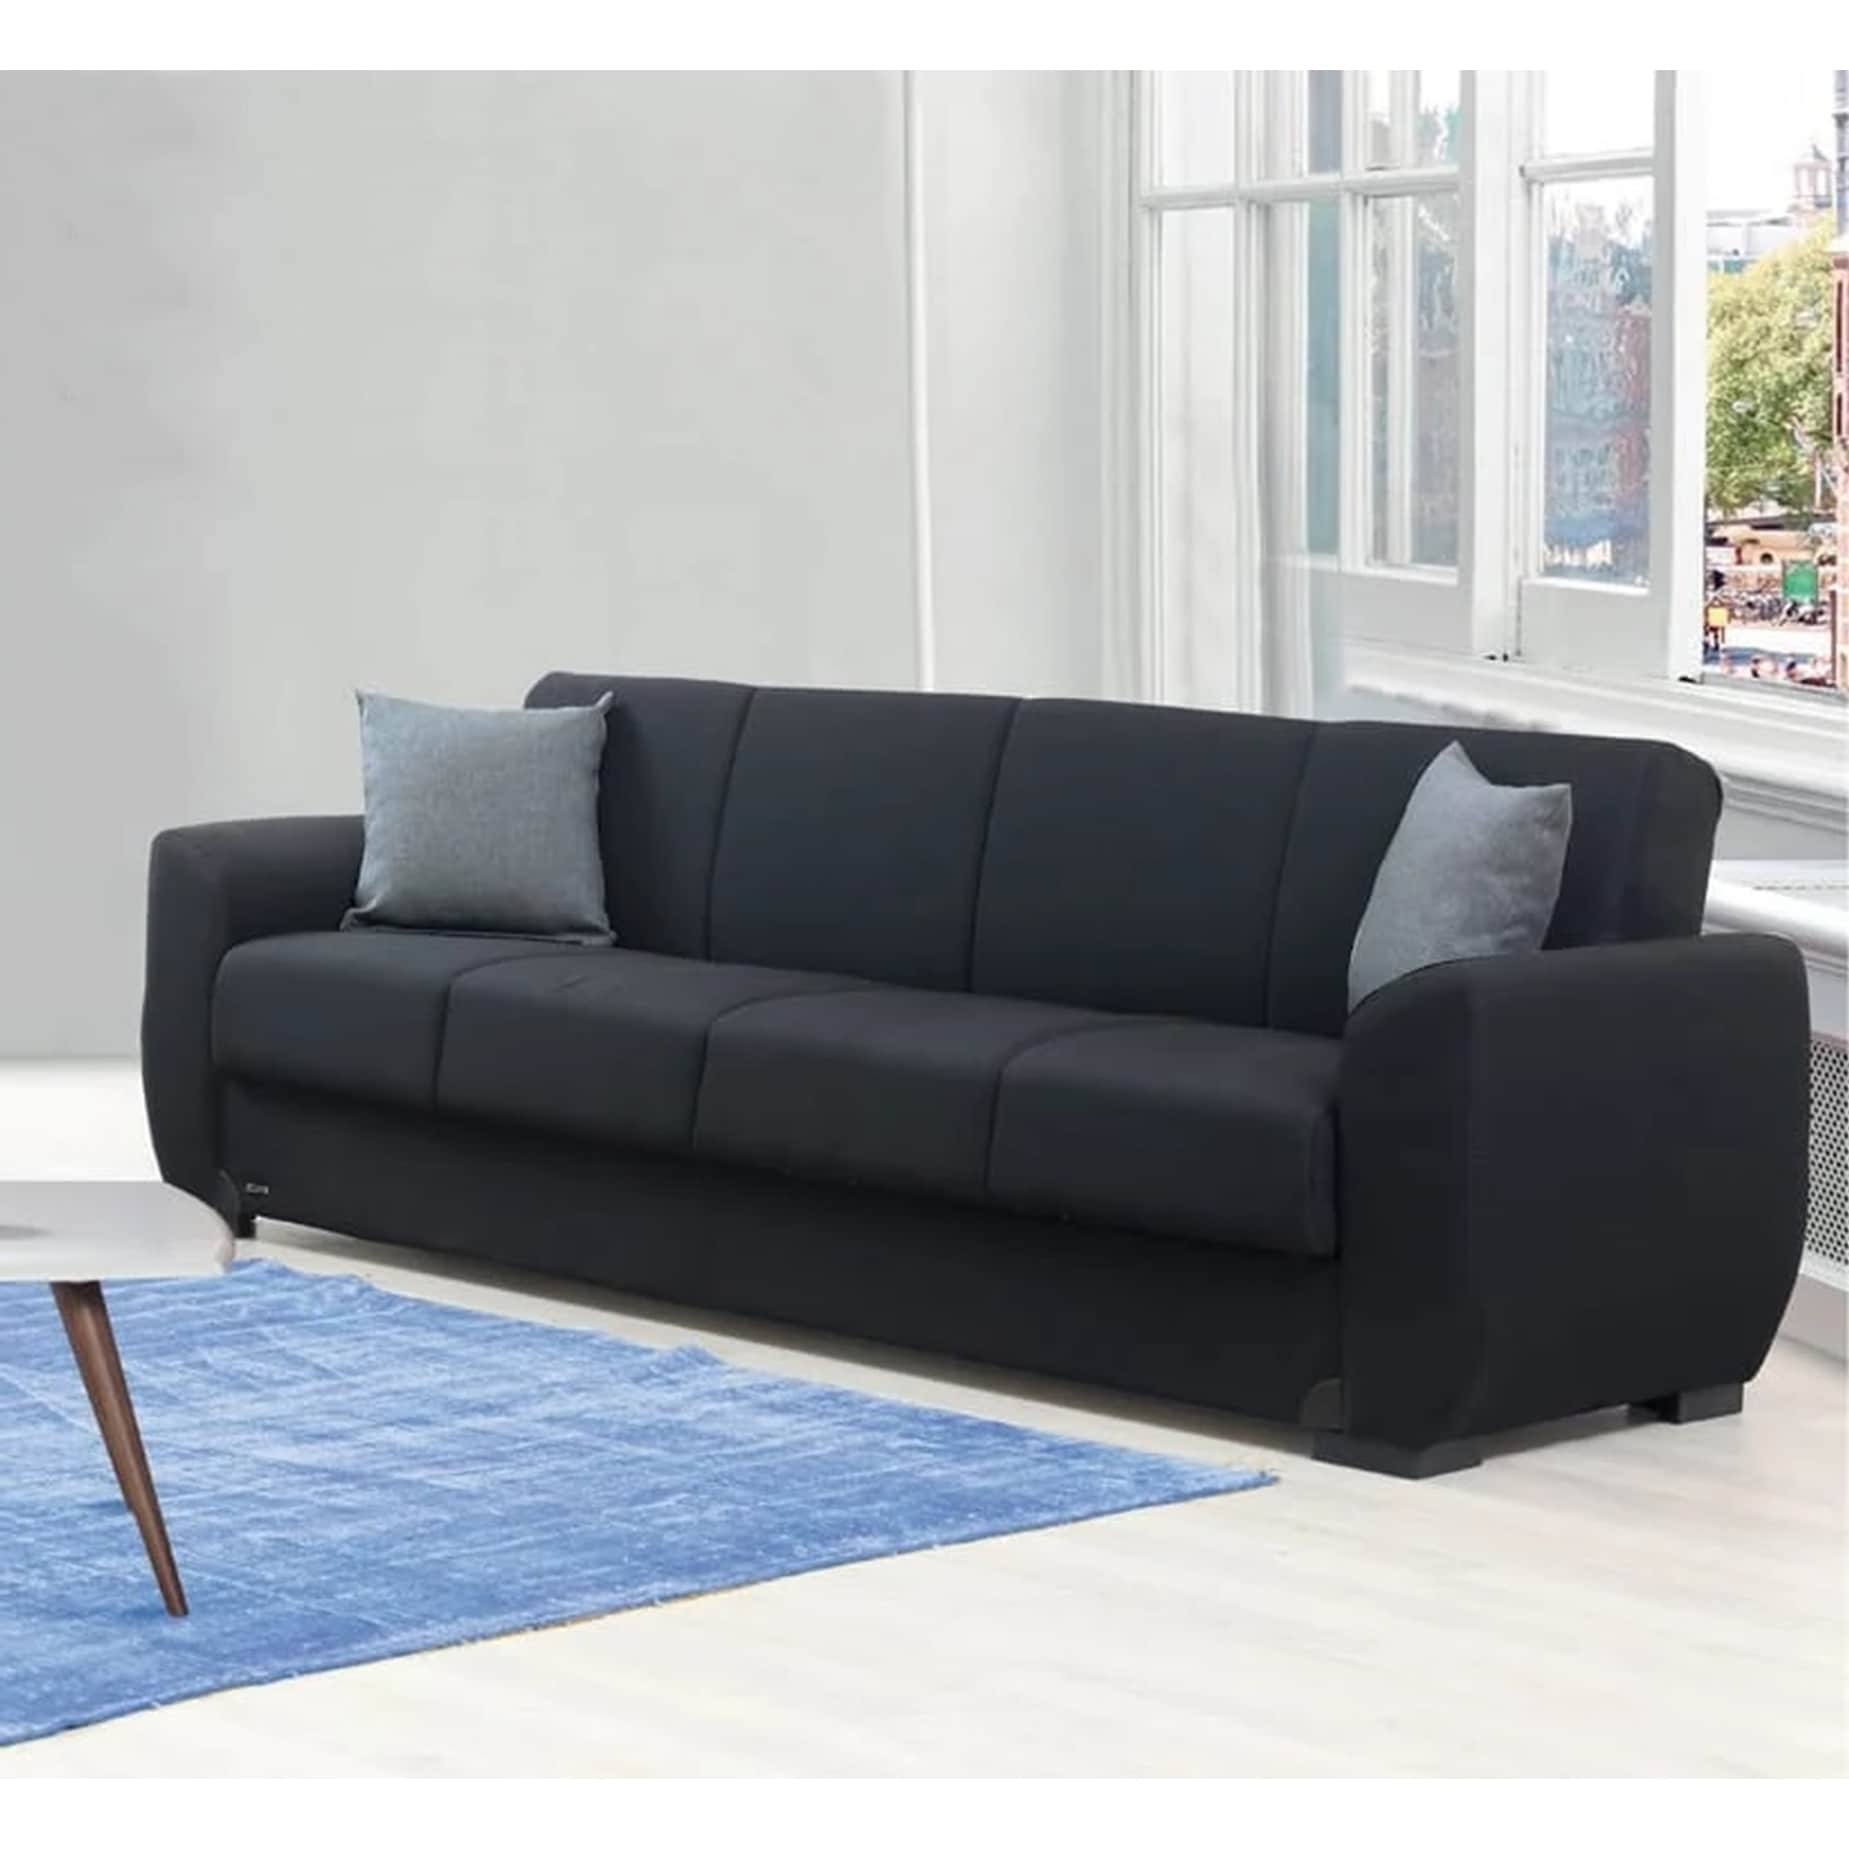 Shop Black Friday Deals On Layton Black Fabric Convertible Sleeper Sofa With Storage On Sale Overstock 32086629